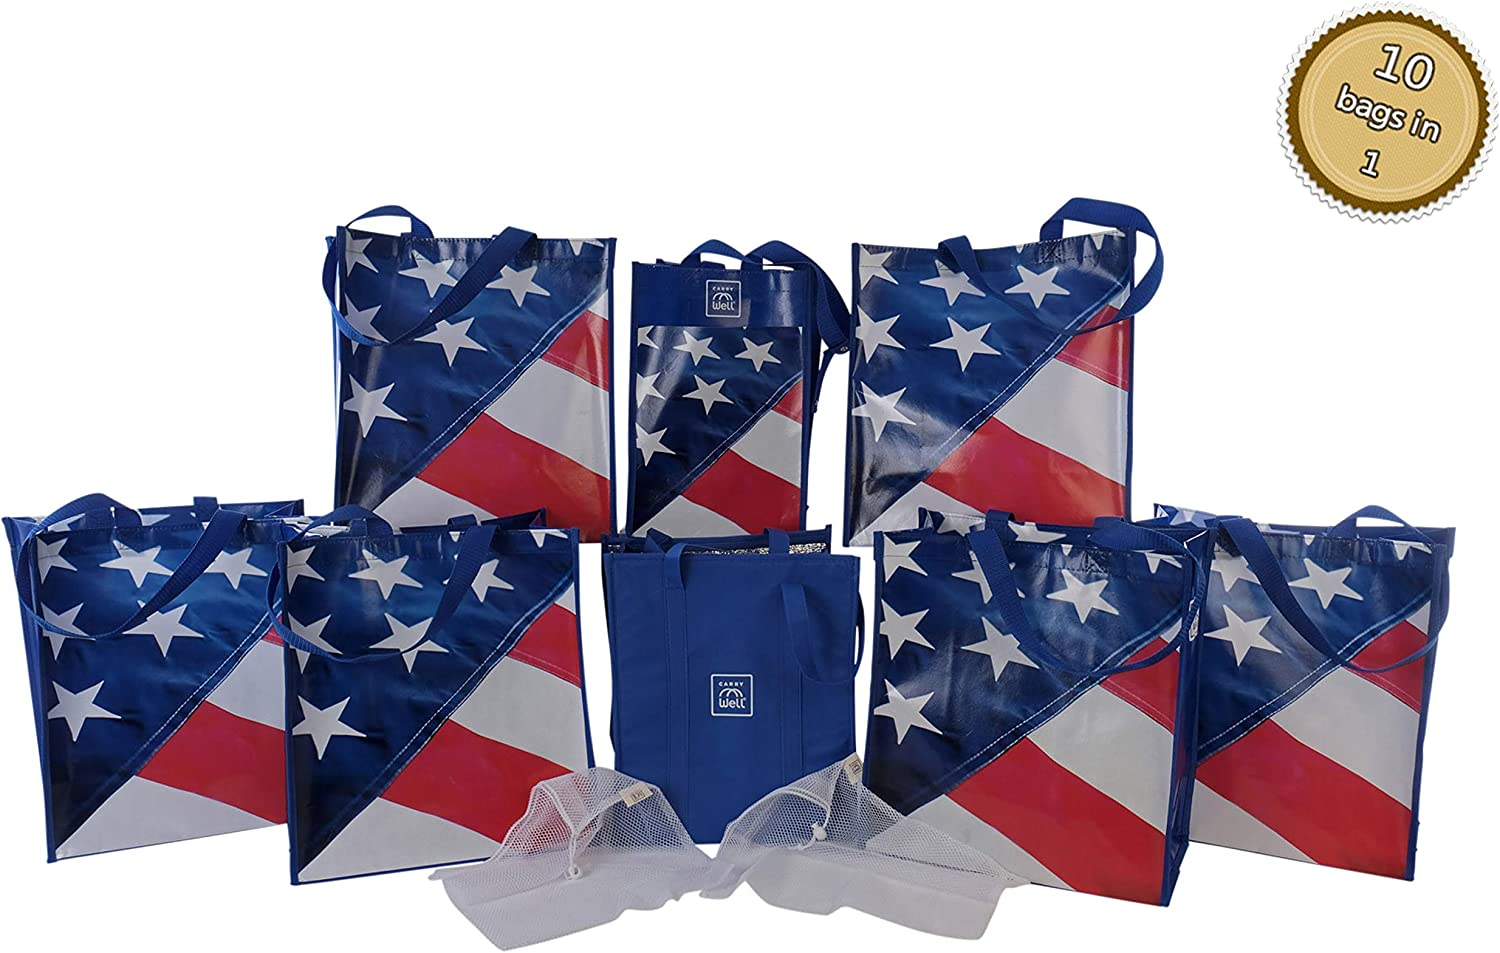 10-in-1 Reusable Grocery Bag & Produce Bags Organizer Set | Stars & Stripes / 6x Reusable Shopping Bags with handles, 2x Mesh Produce Bags, Insulated Freezer Bag, 6-Bottle Wine Carrier/Tote